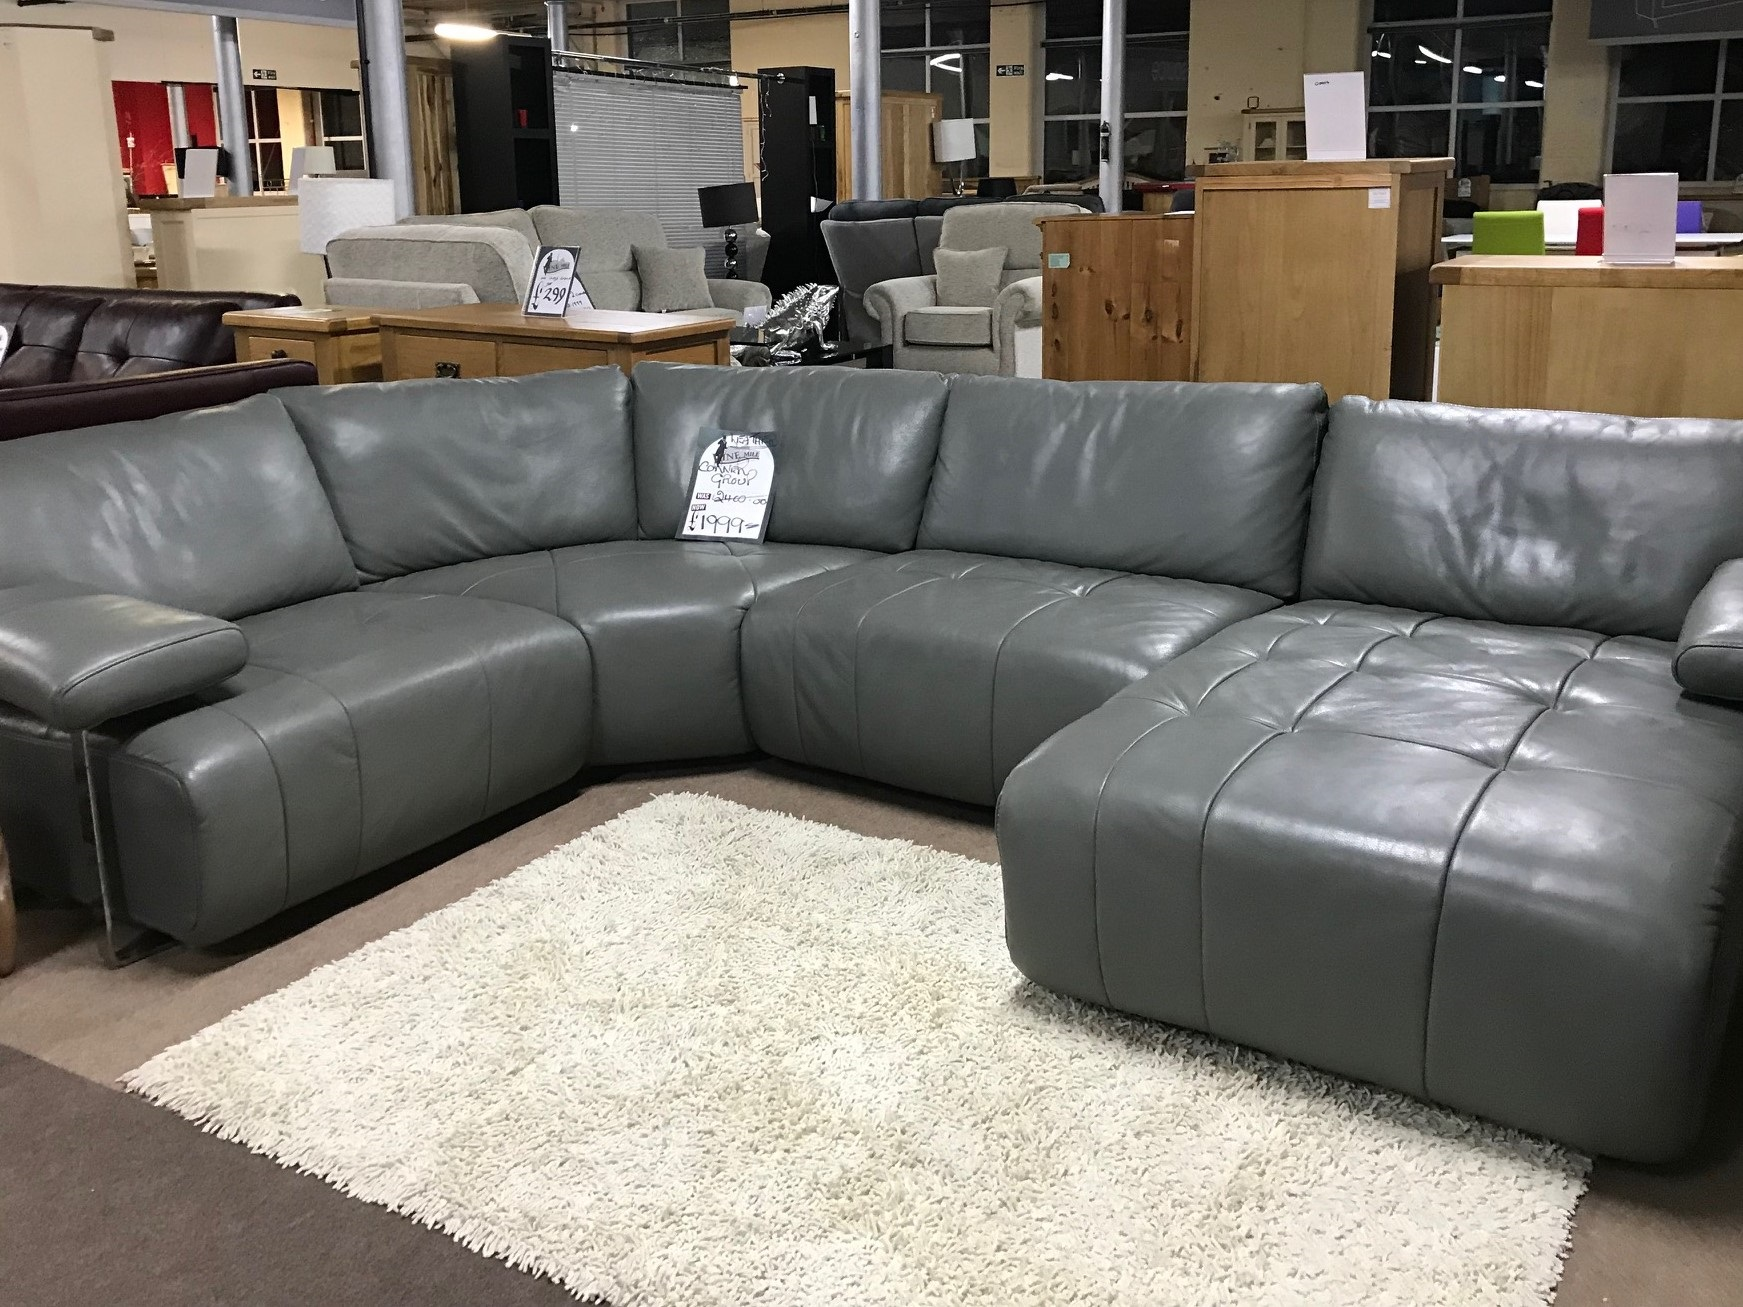 Violino Extremely Comfortable High Grade Large Leather Corner Sofa Furnimax Brands Outlet